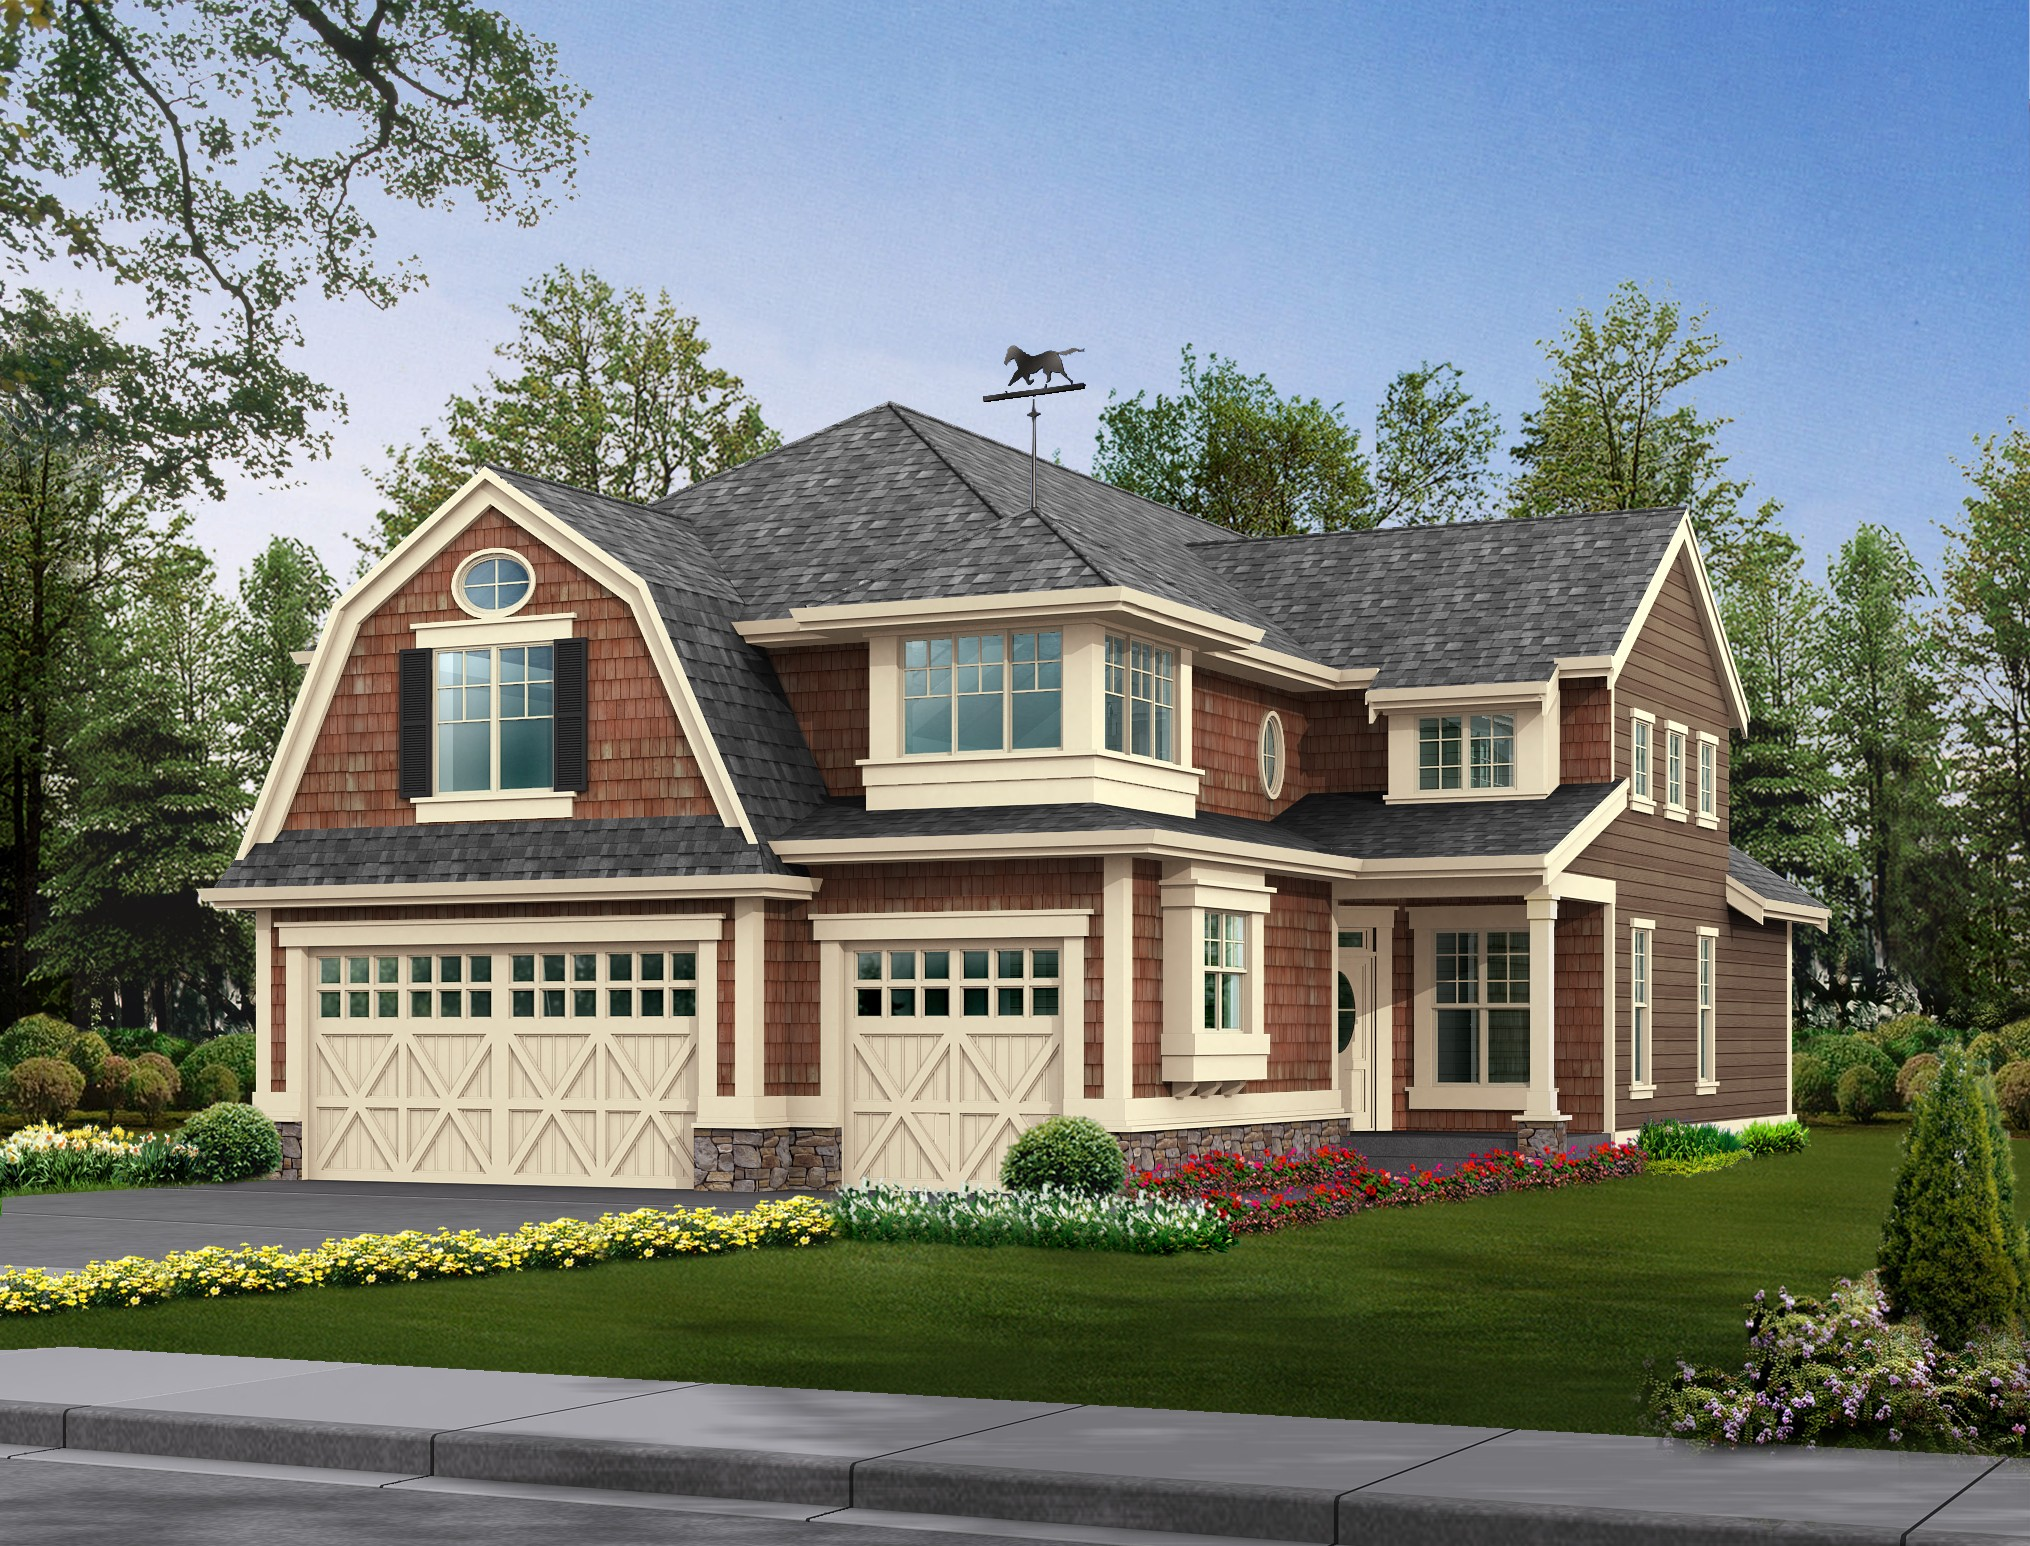 Home with an intricate roof design that includes a gambrel design along with other roof styles such as gable.